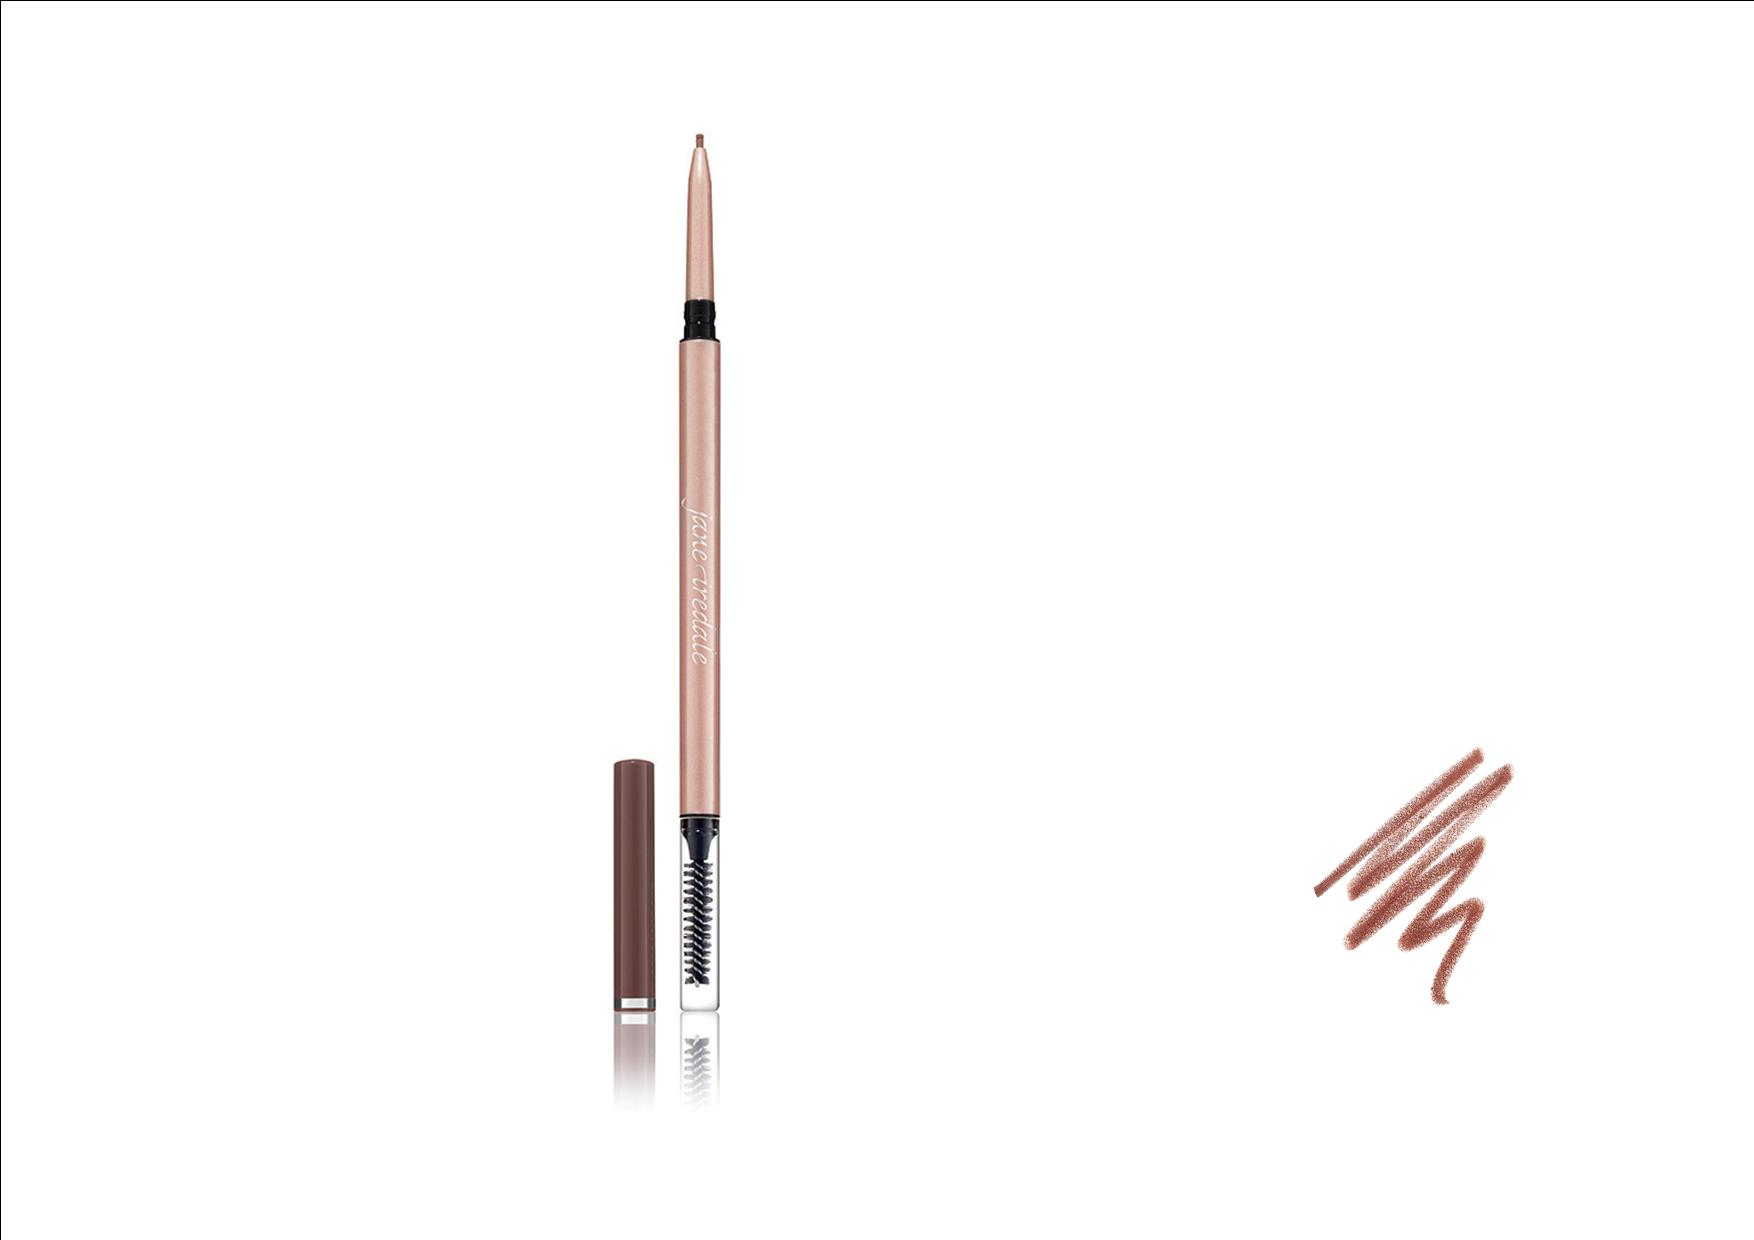 Jane Iredale Rectractable Brow Pencil Brunette